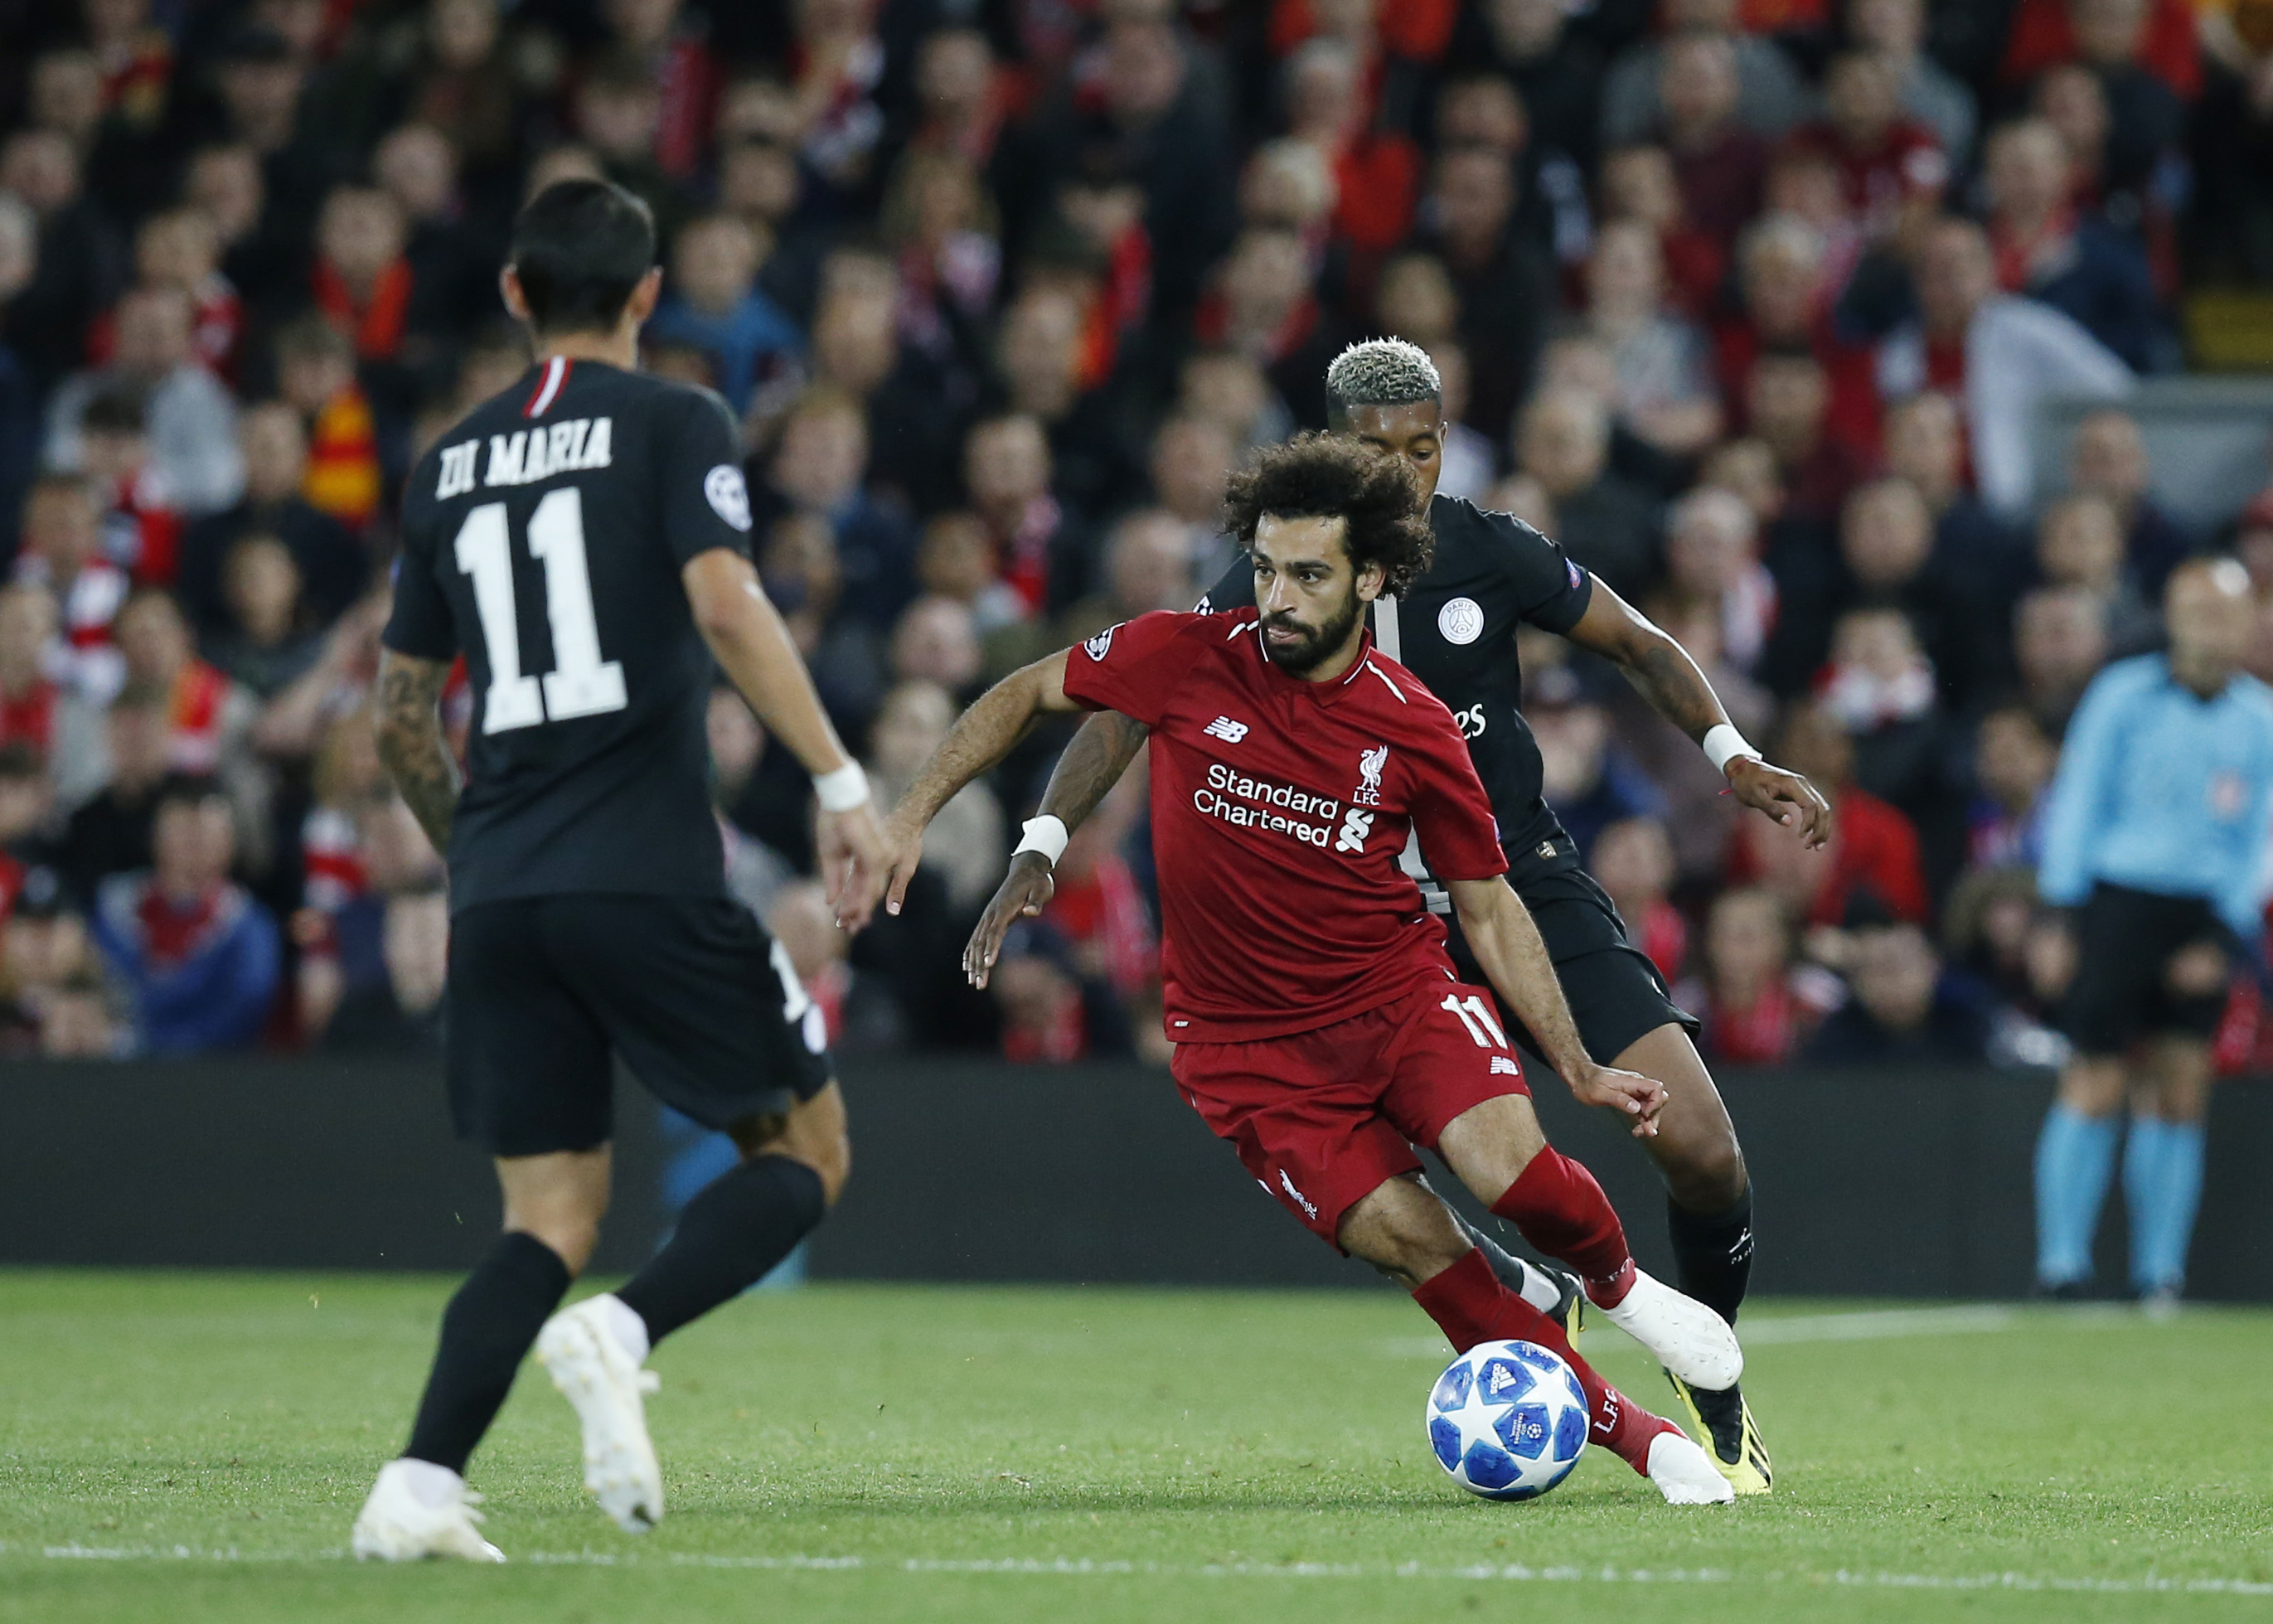 Jurgen Klopp: Mohamed Salah needs to relax